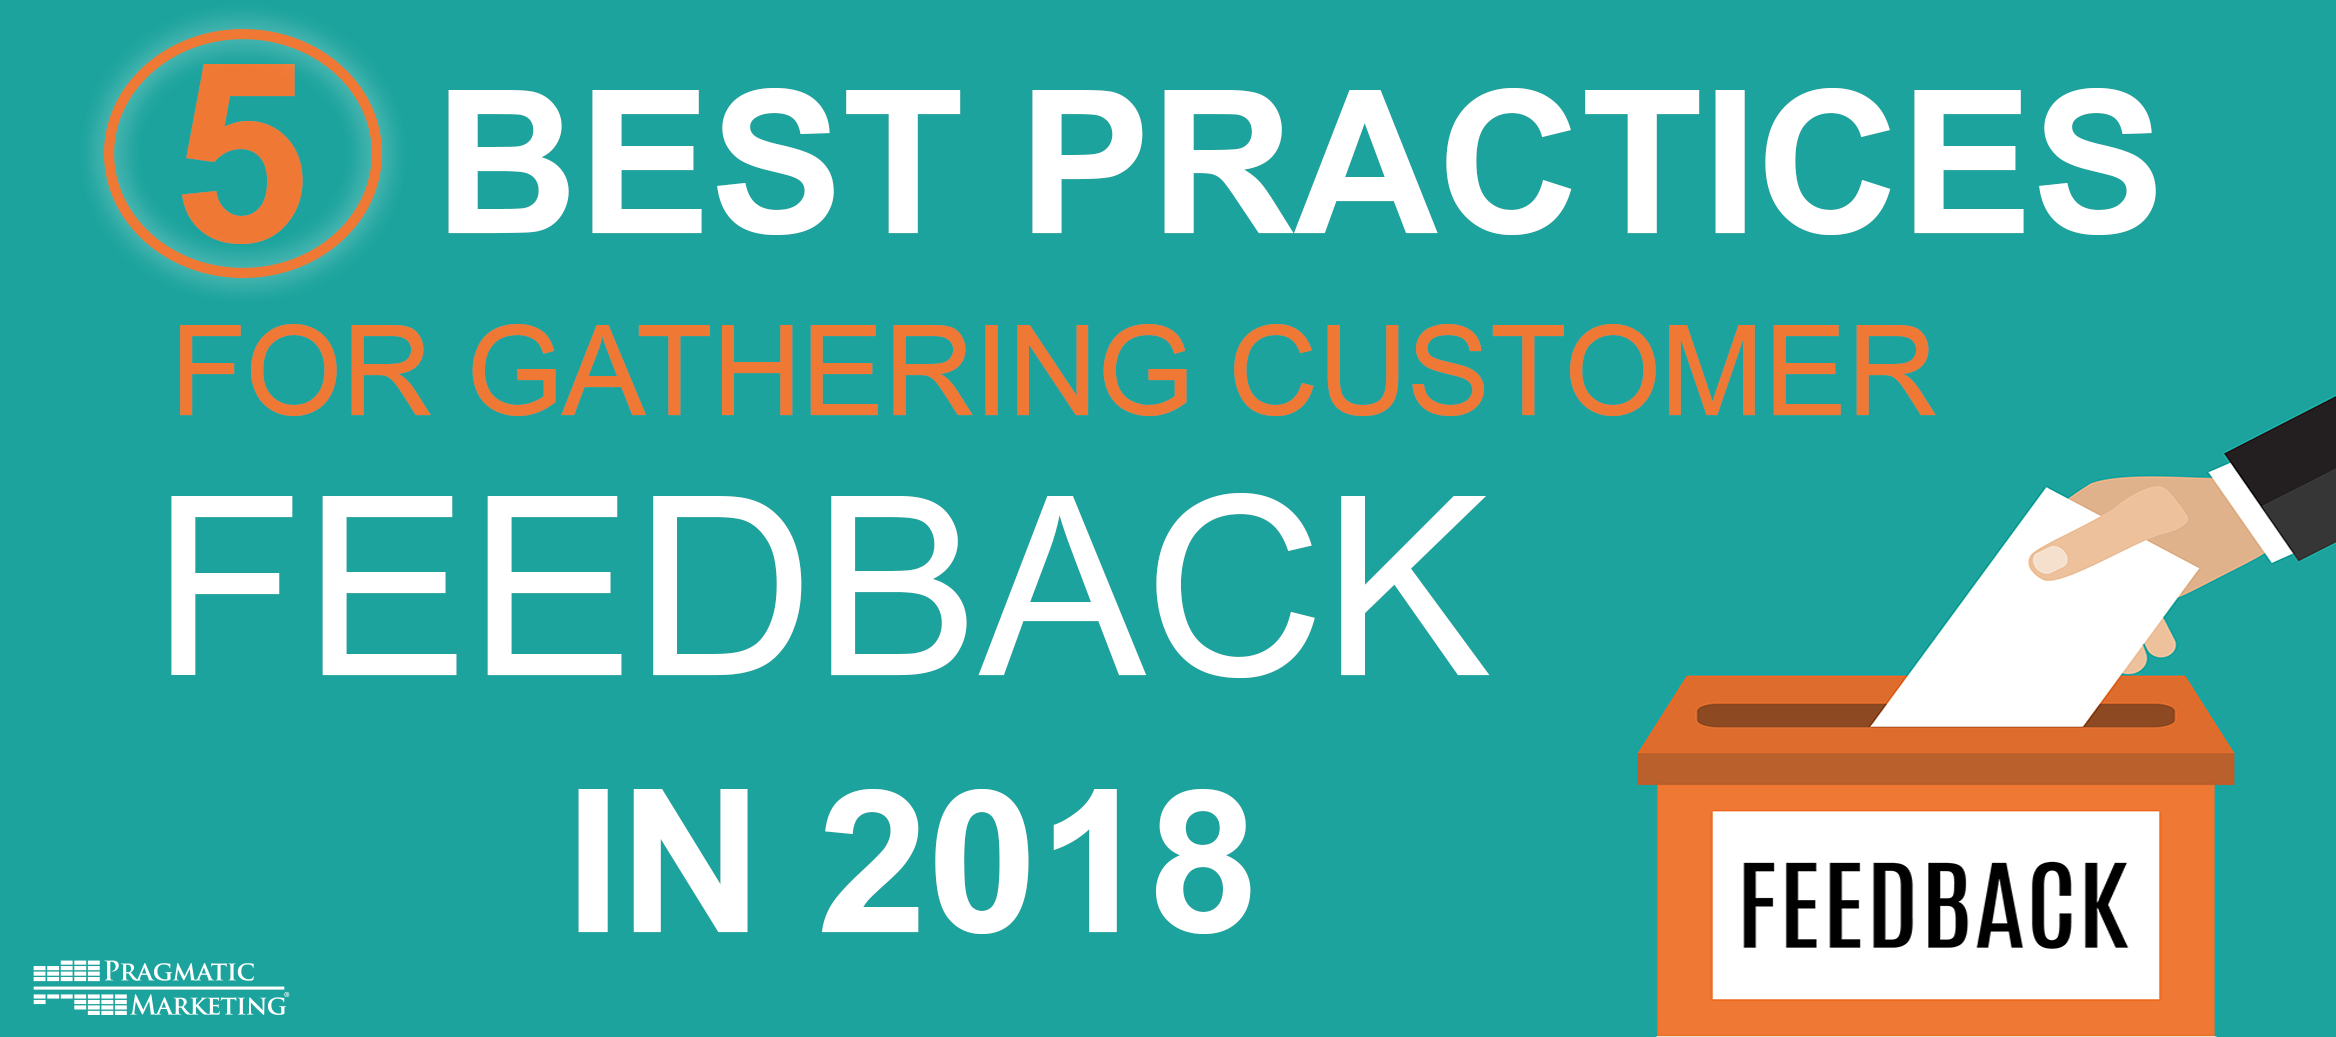 5 Best Practices for Gathering Customer Feedback in 2018